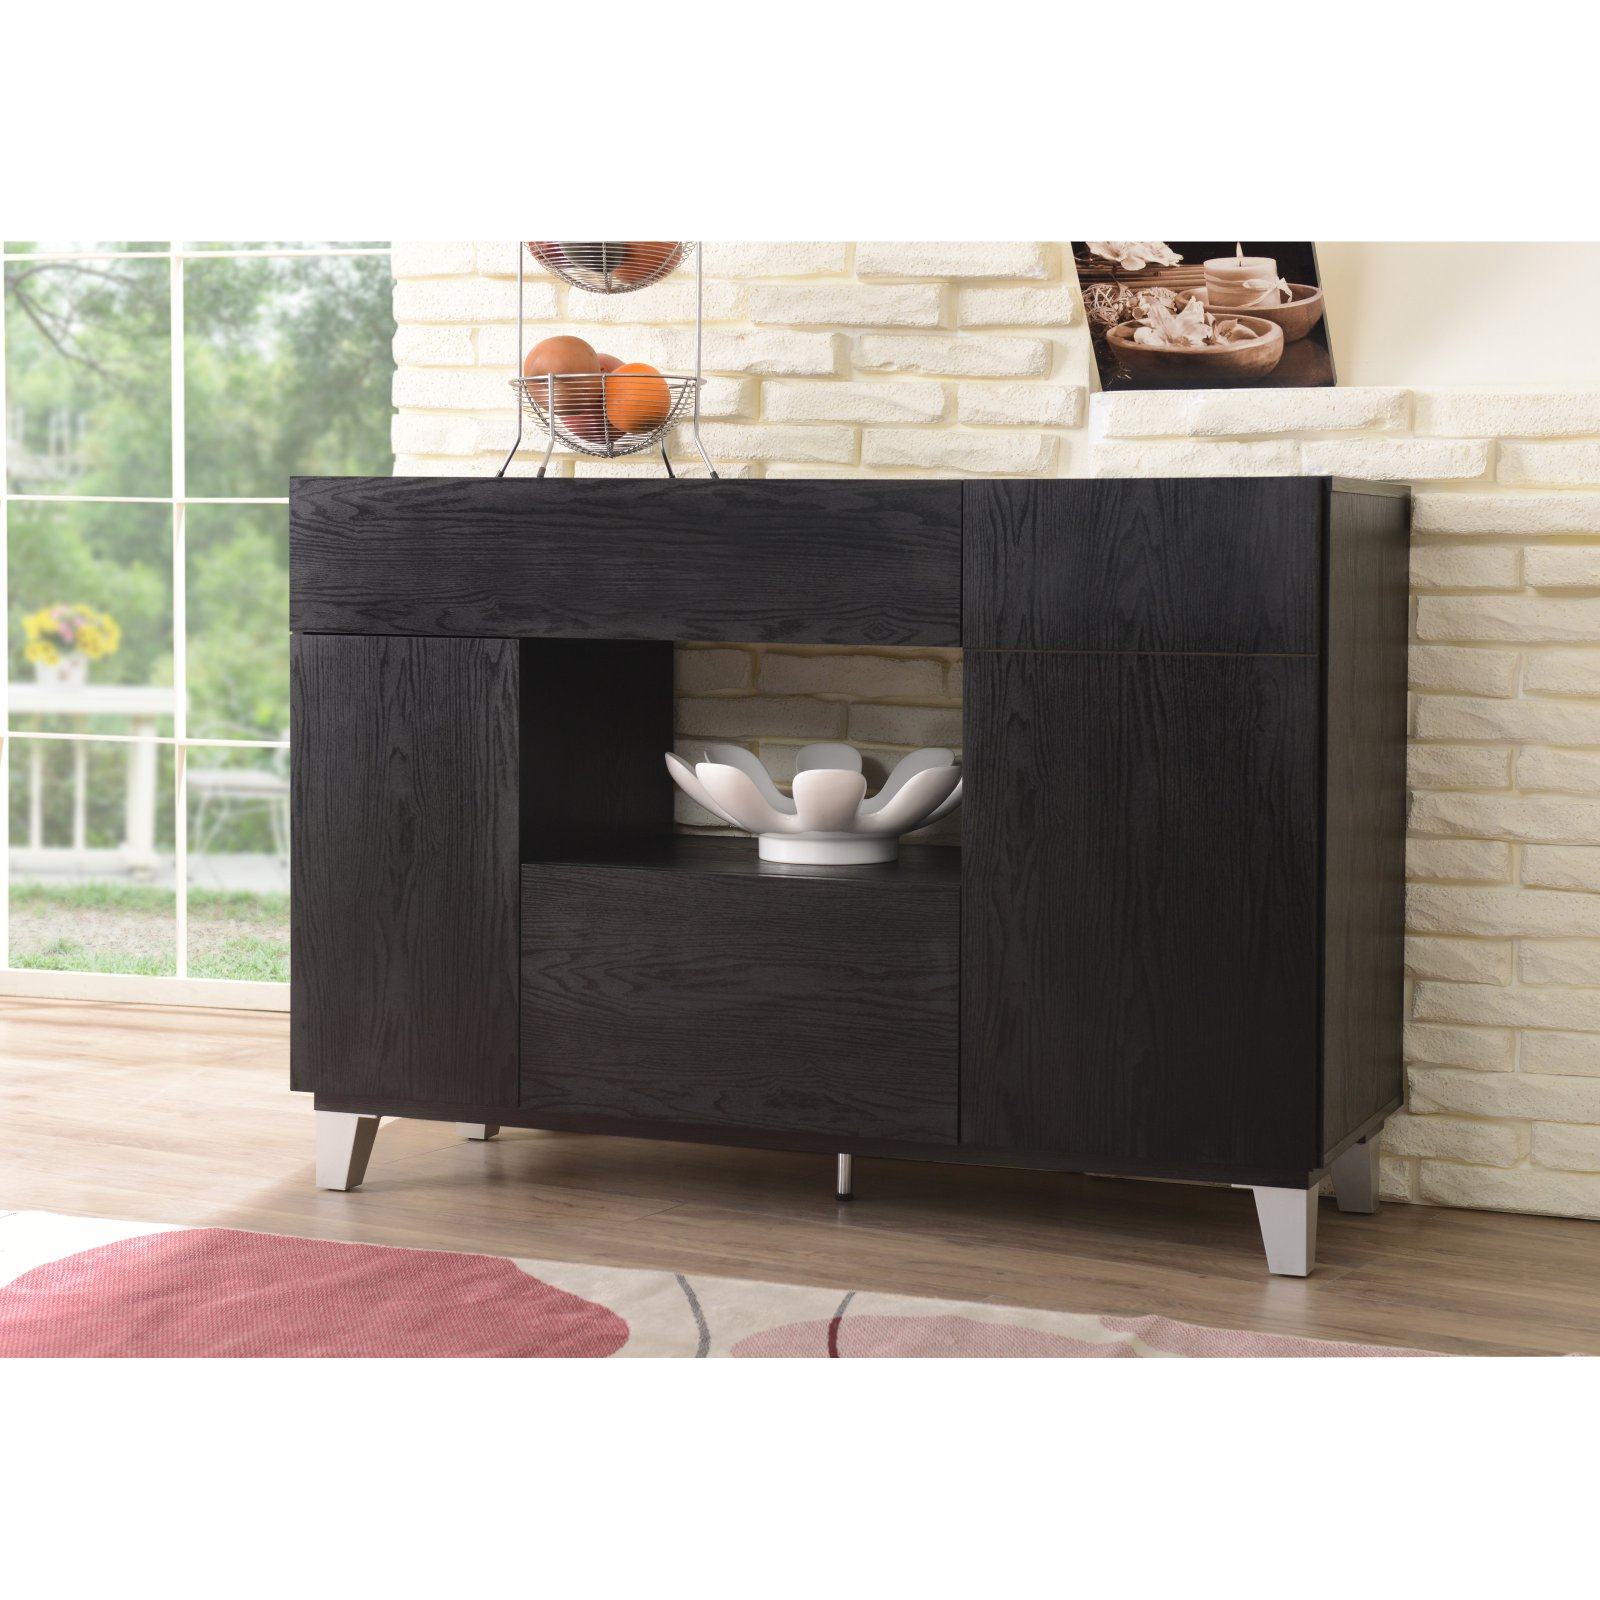 Furniture of America Delevig Black Contemporary Dining Buffet Server